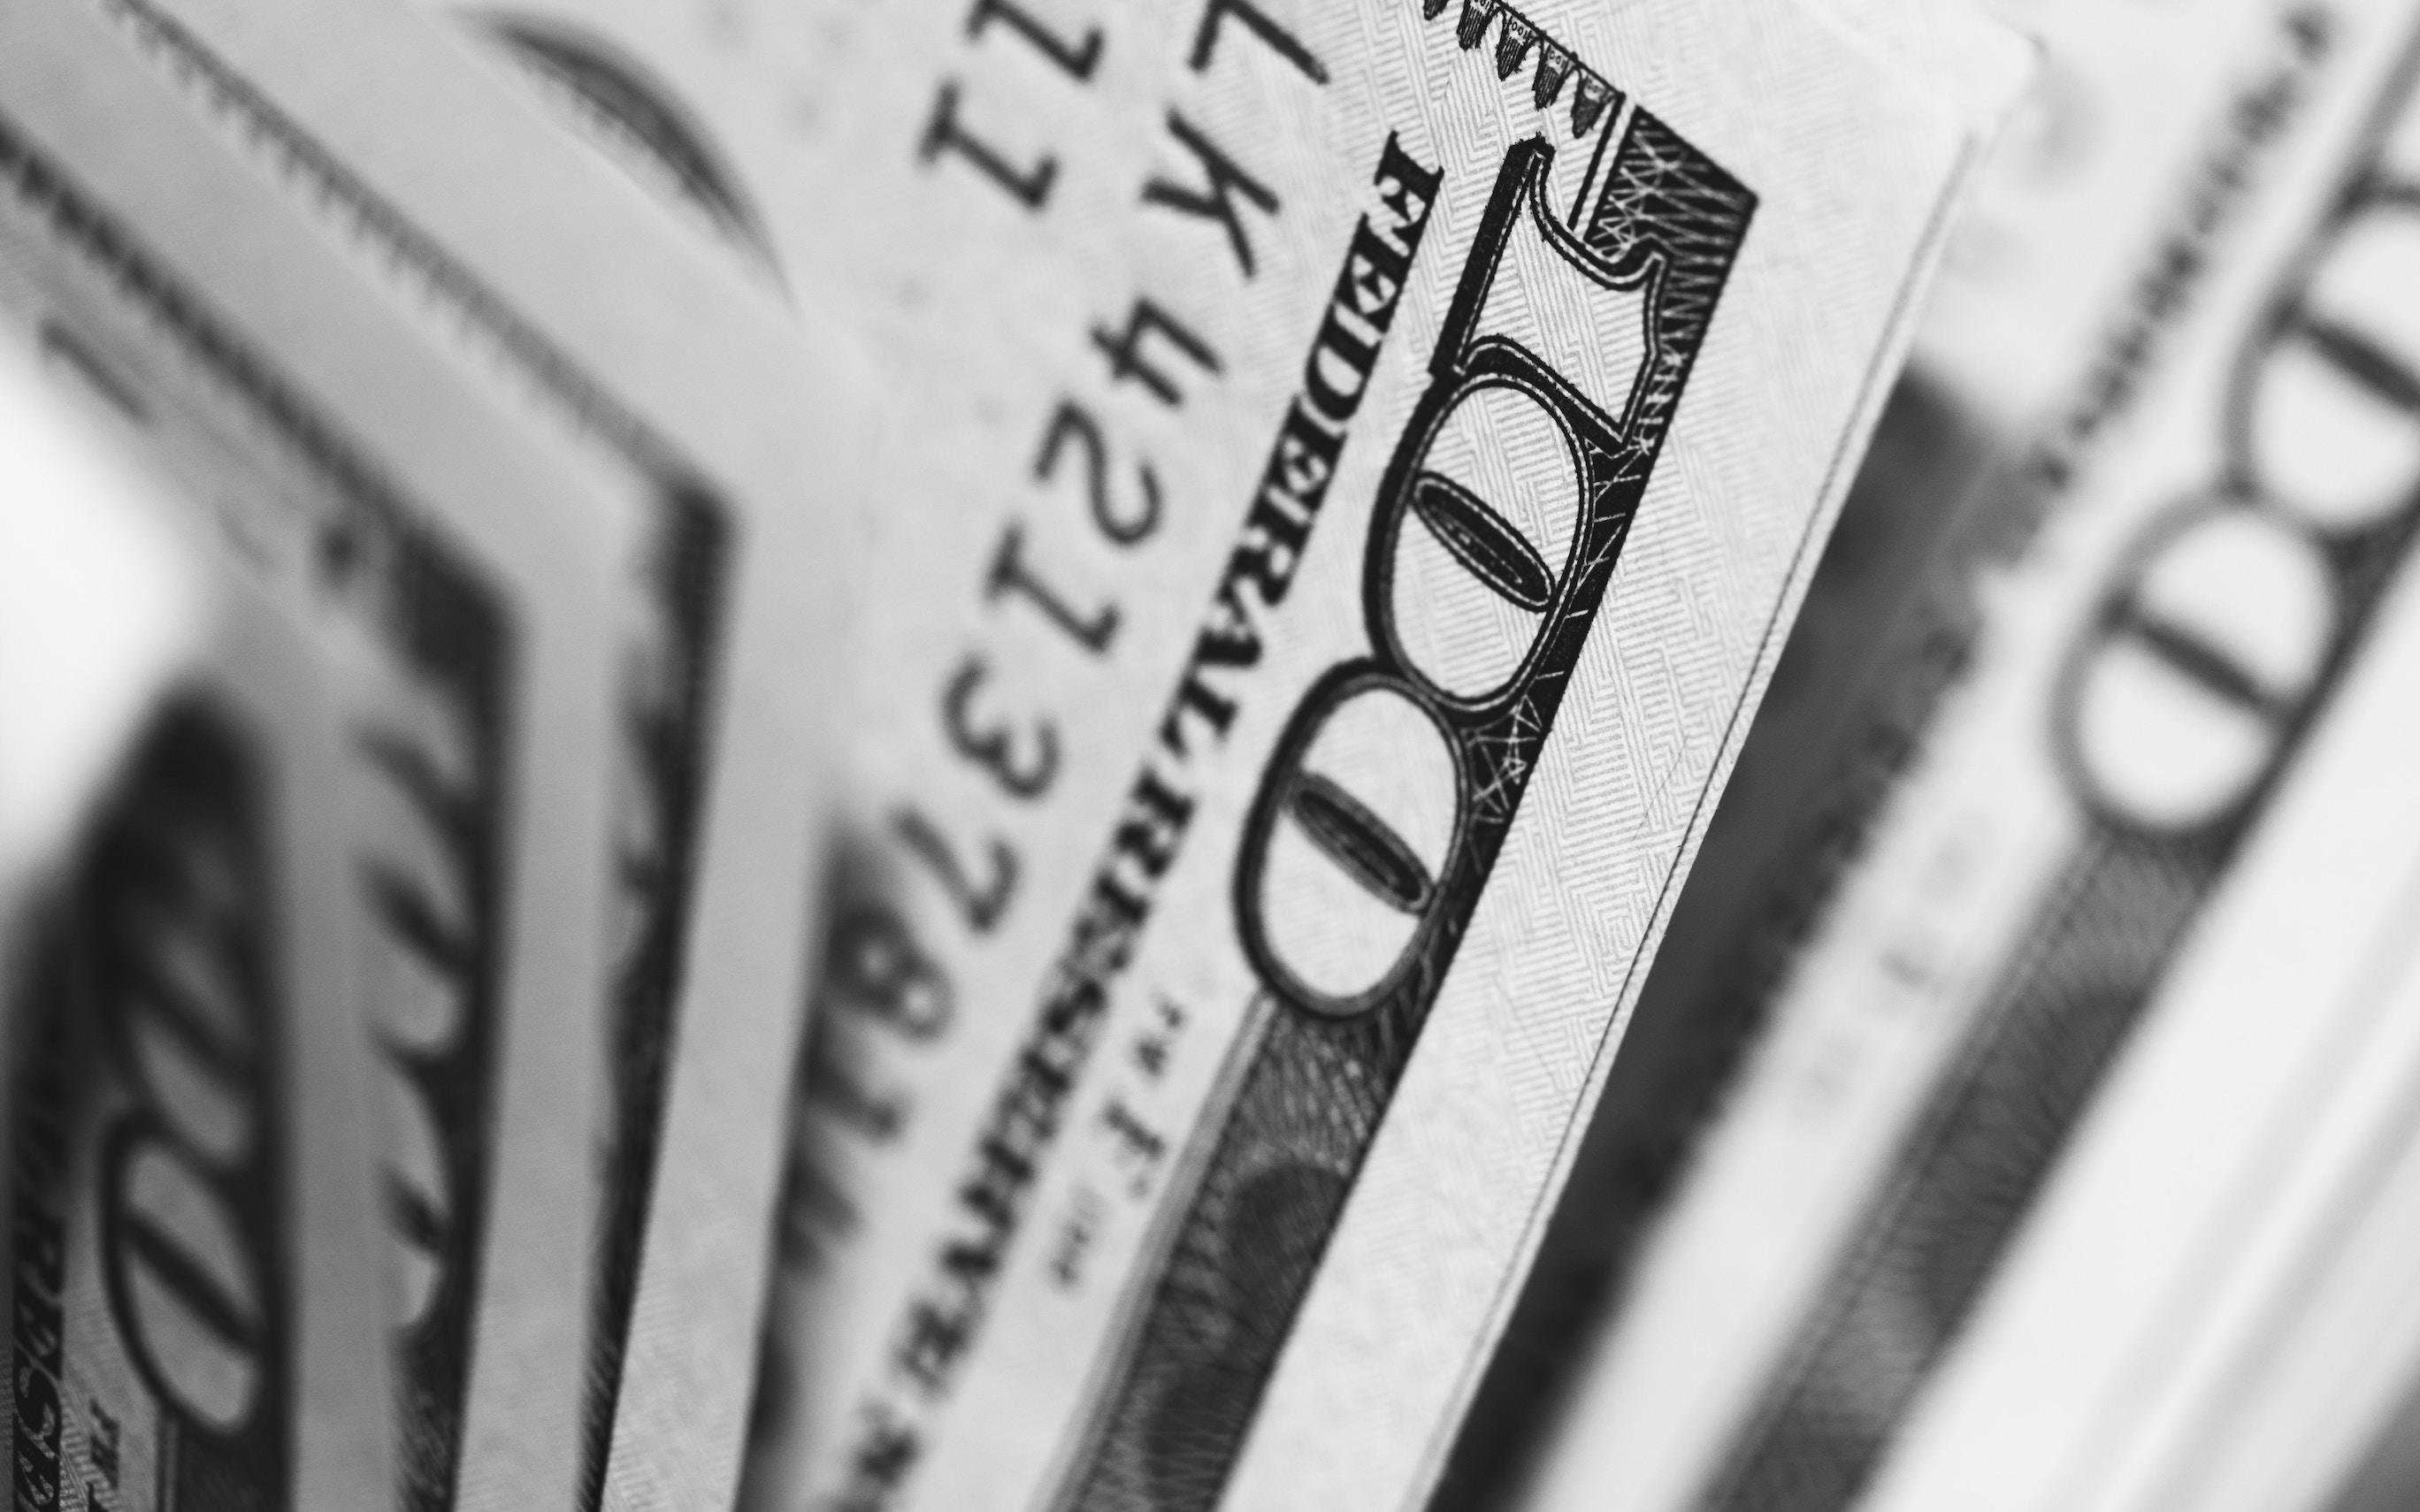 Researchers have found a link between the sudden loss of wealth and an increased risk of death among middle-aged and older adults in the United States.